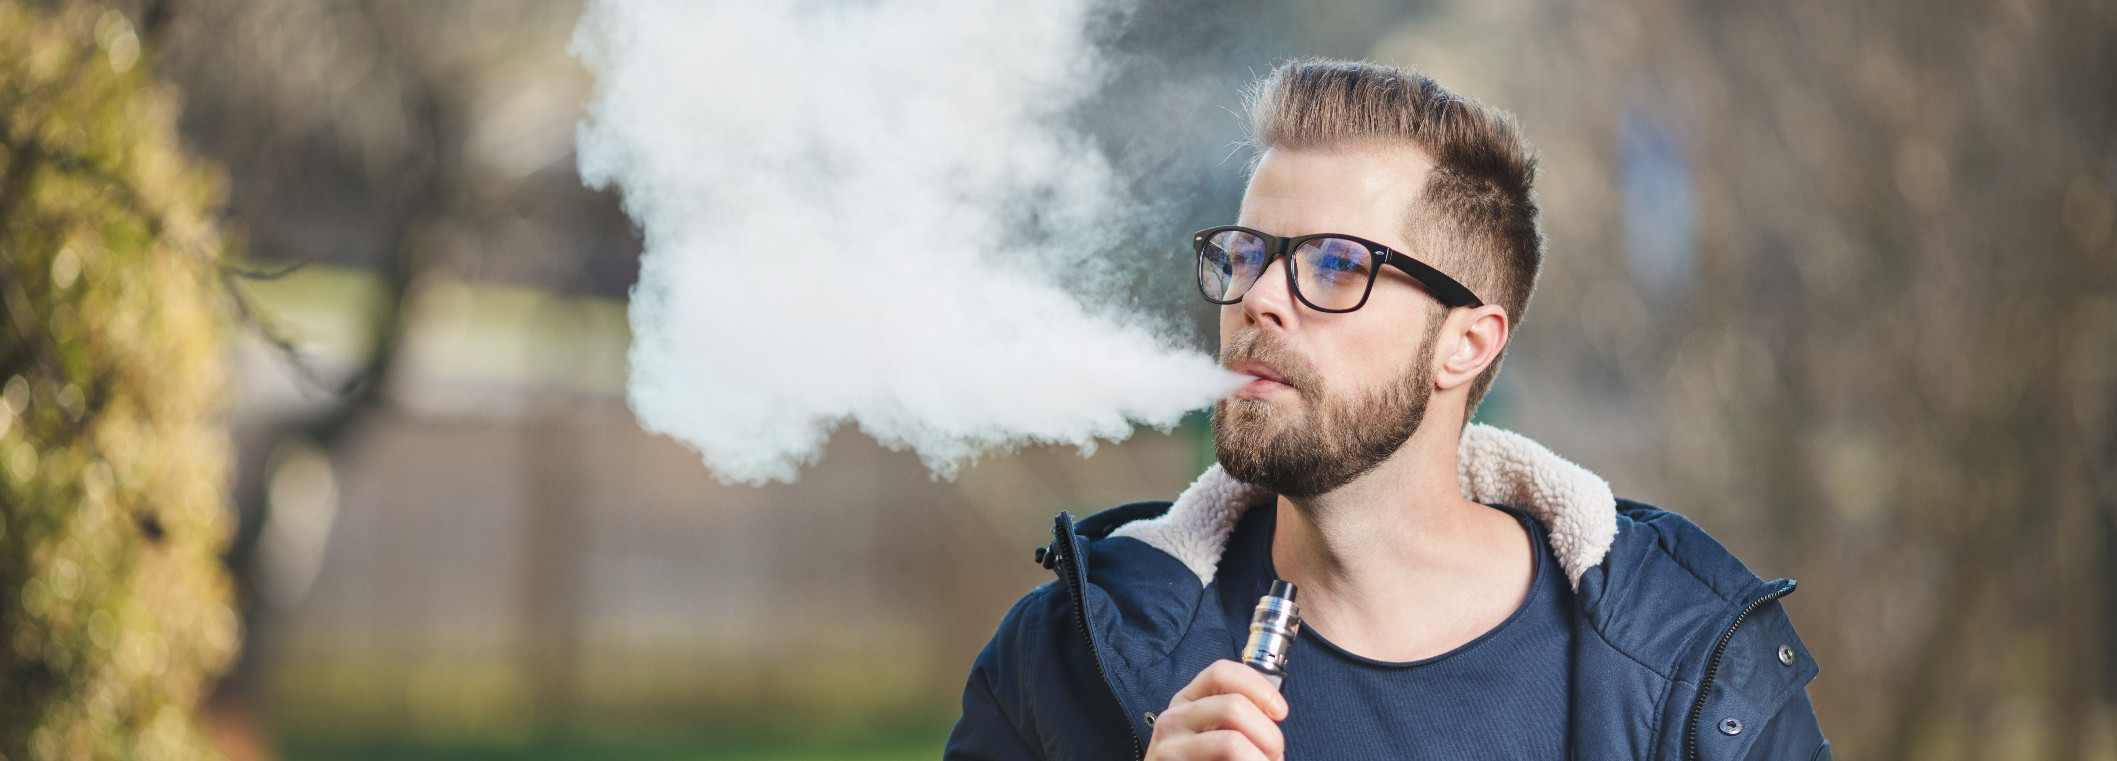 Join Our Fight|Legalise vaping in Queensland